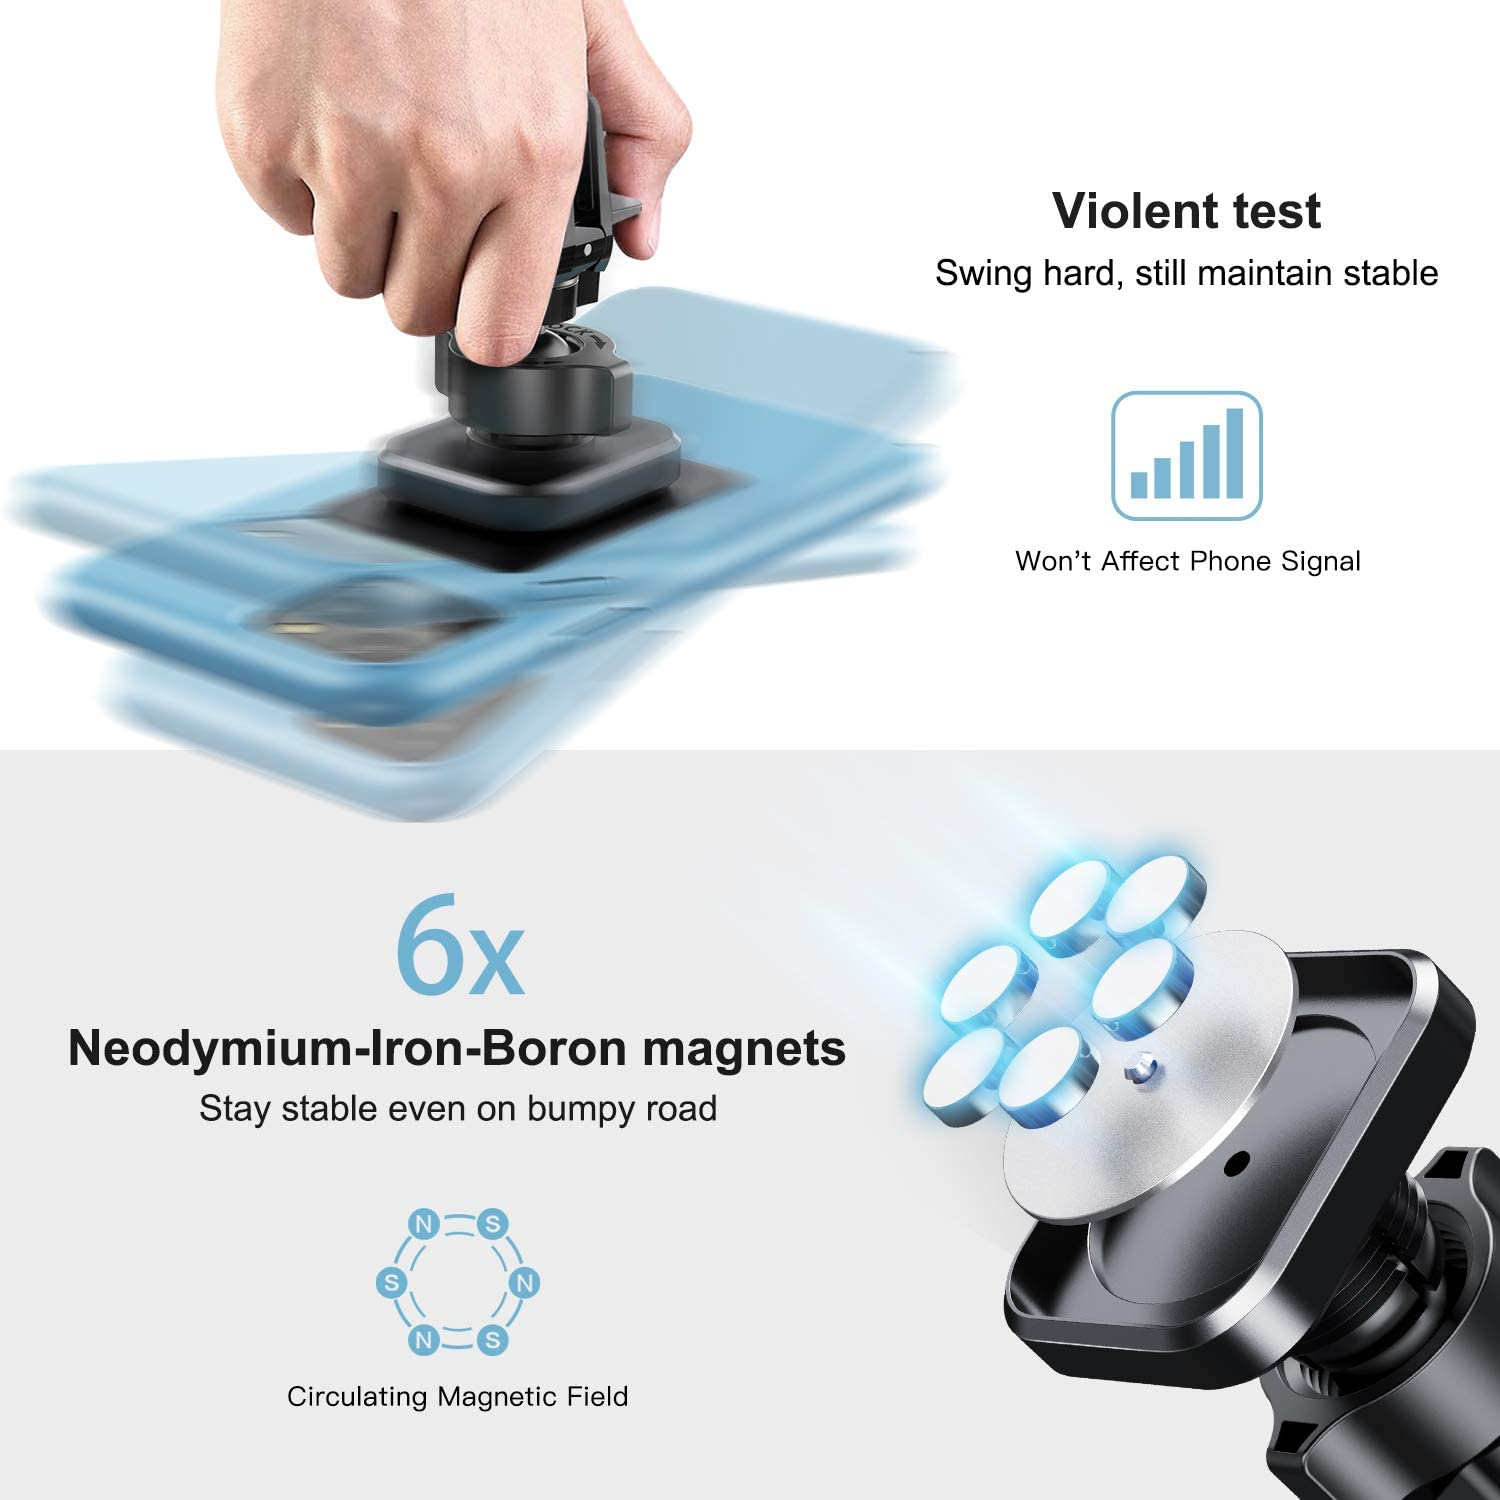 Desertwest Car Vent Phone Mount Strong Magnet Universal Car Cell Phone Holder Compatible with iPhone SE 11 Pro Max XR Samsung Galaxy S20 S10 S10 Magnetic Phone Car Mount Google and More